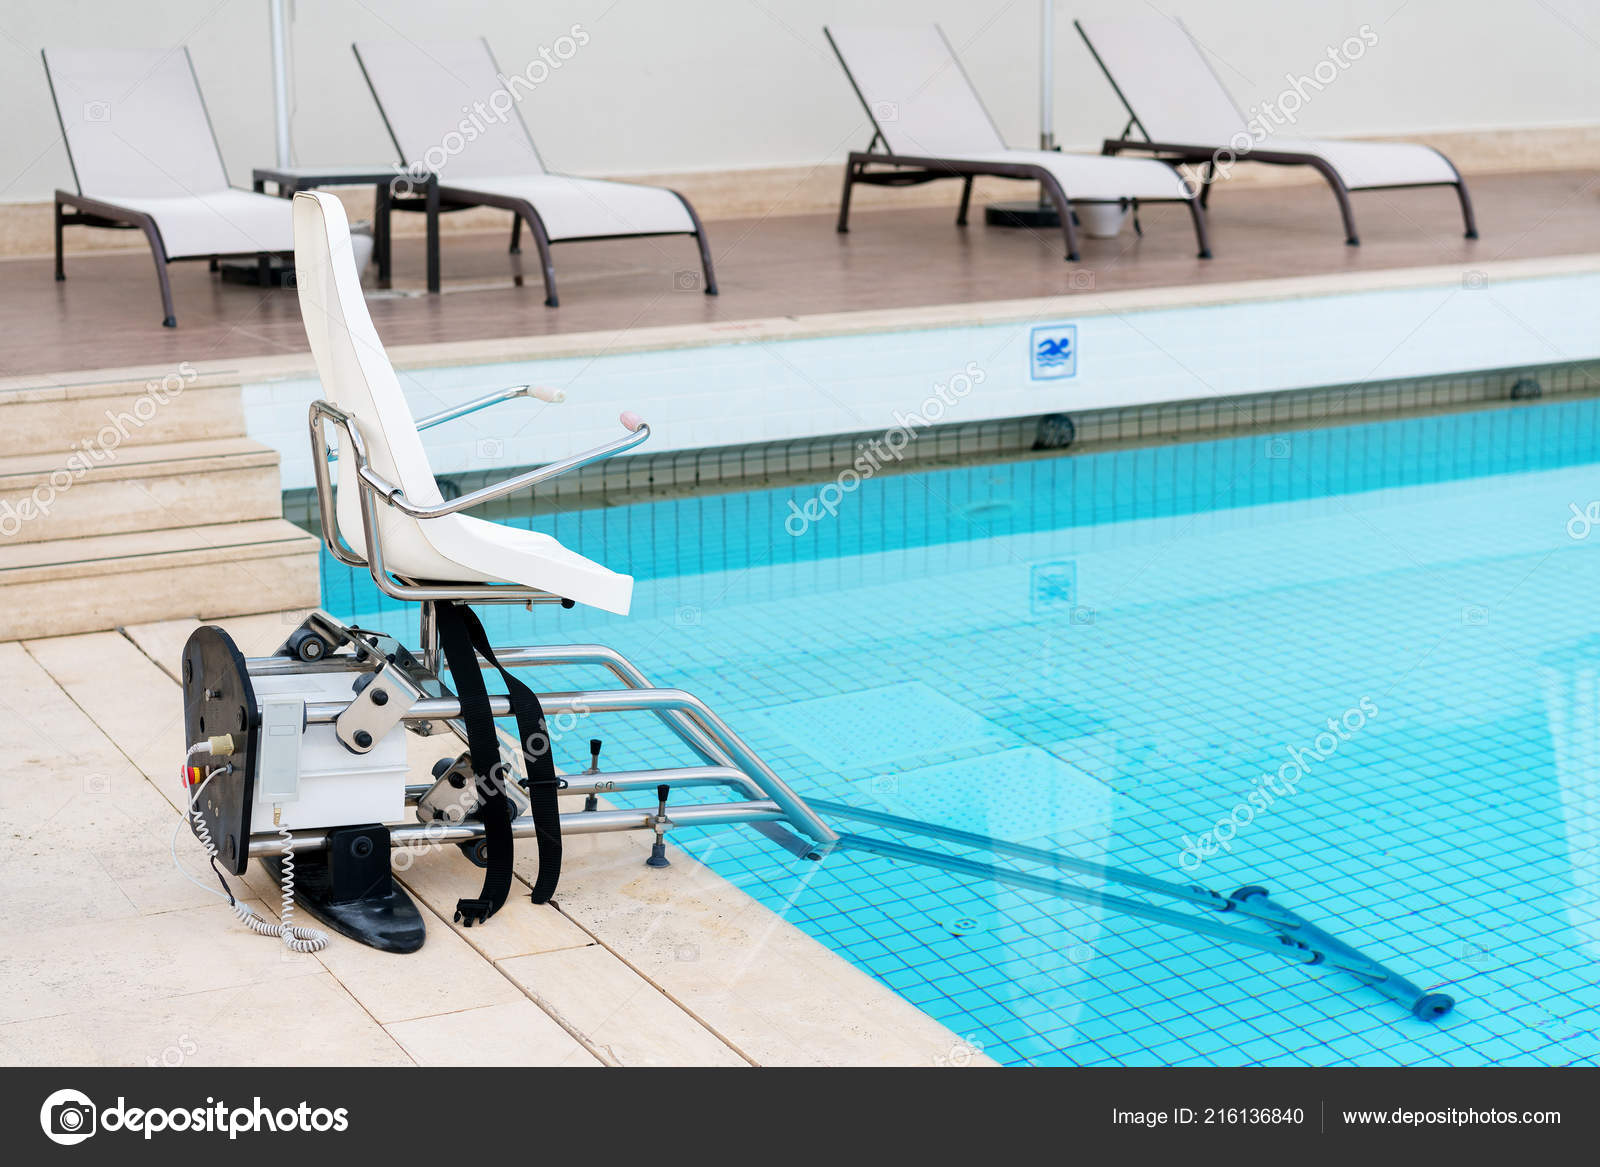 Swimming Pool Lifts Disabled People Access Pool — Stock ...